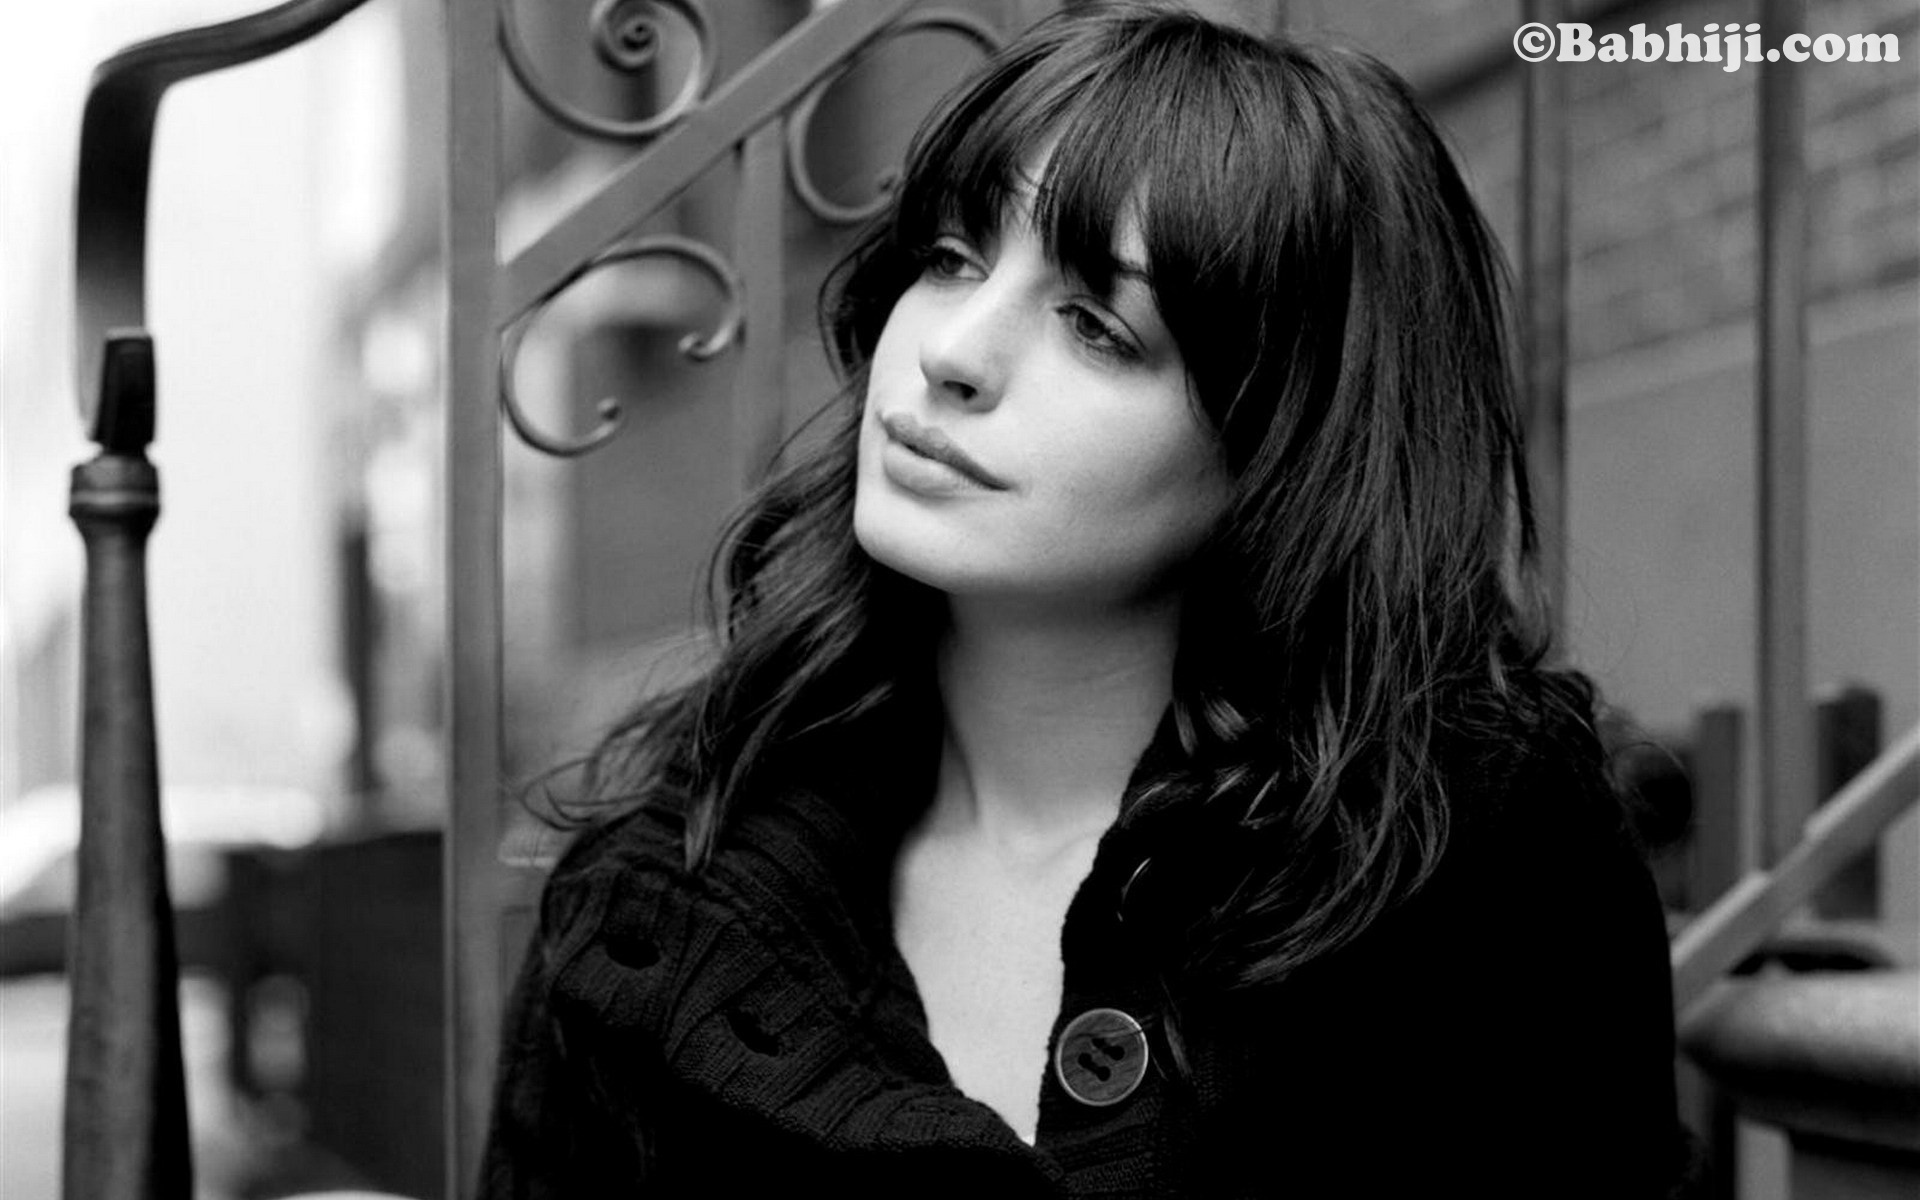 Anne Hathaway, Anne Hathaway Wallpaper, Anne Hathaway Photo, Anne Hathaway Images